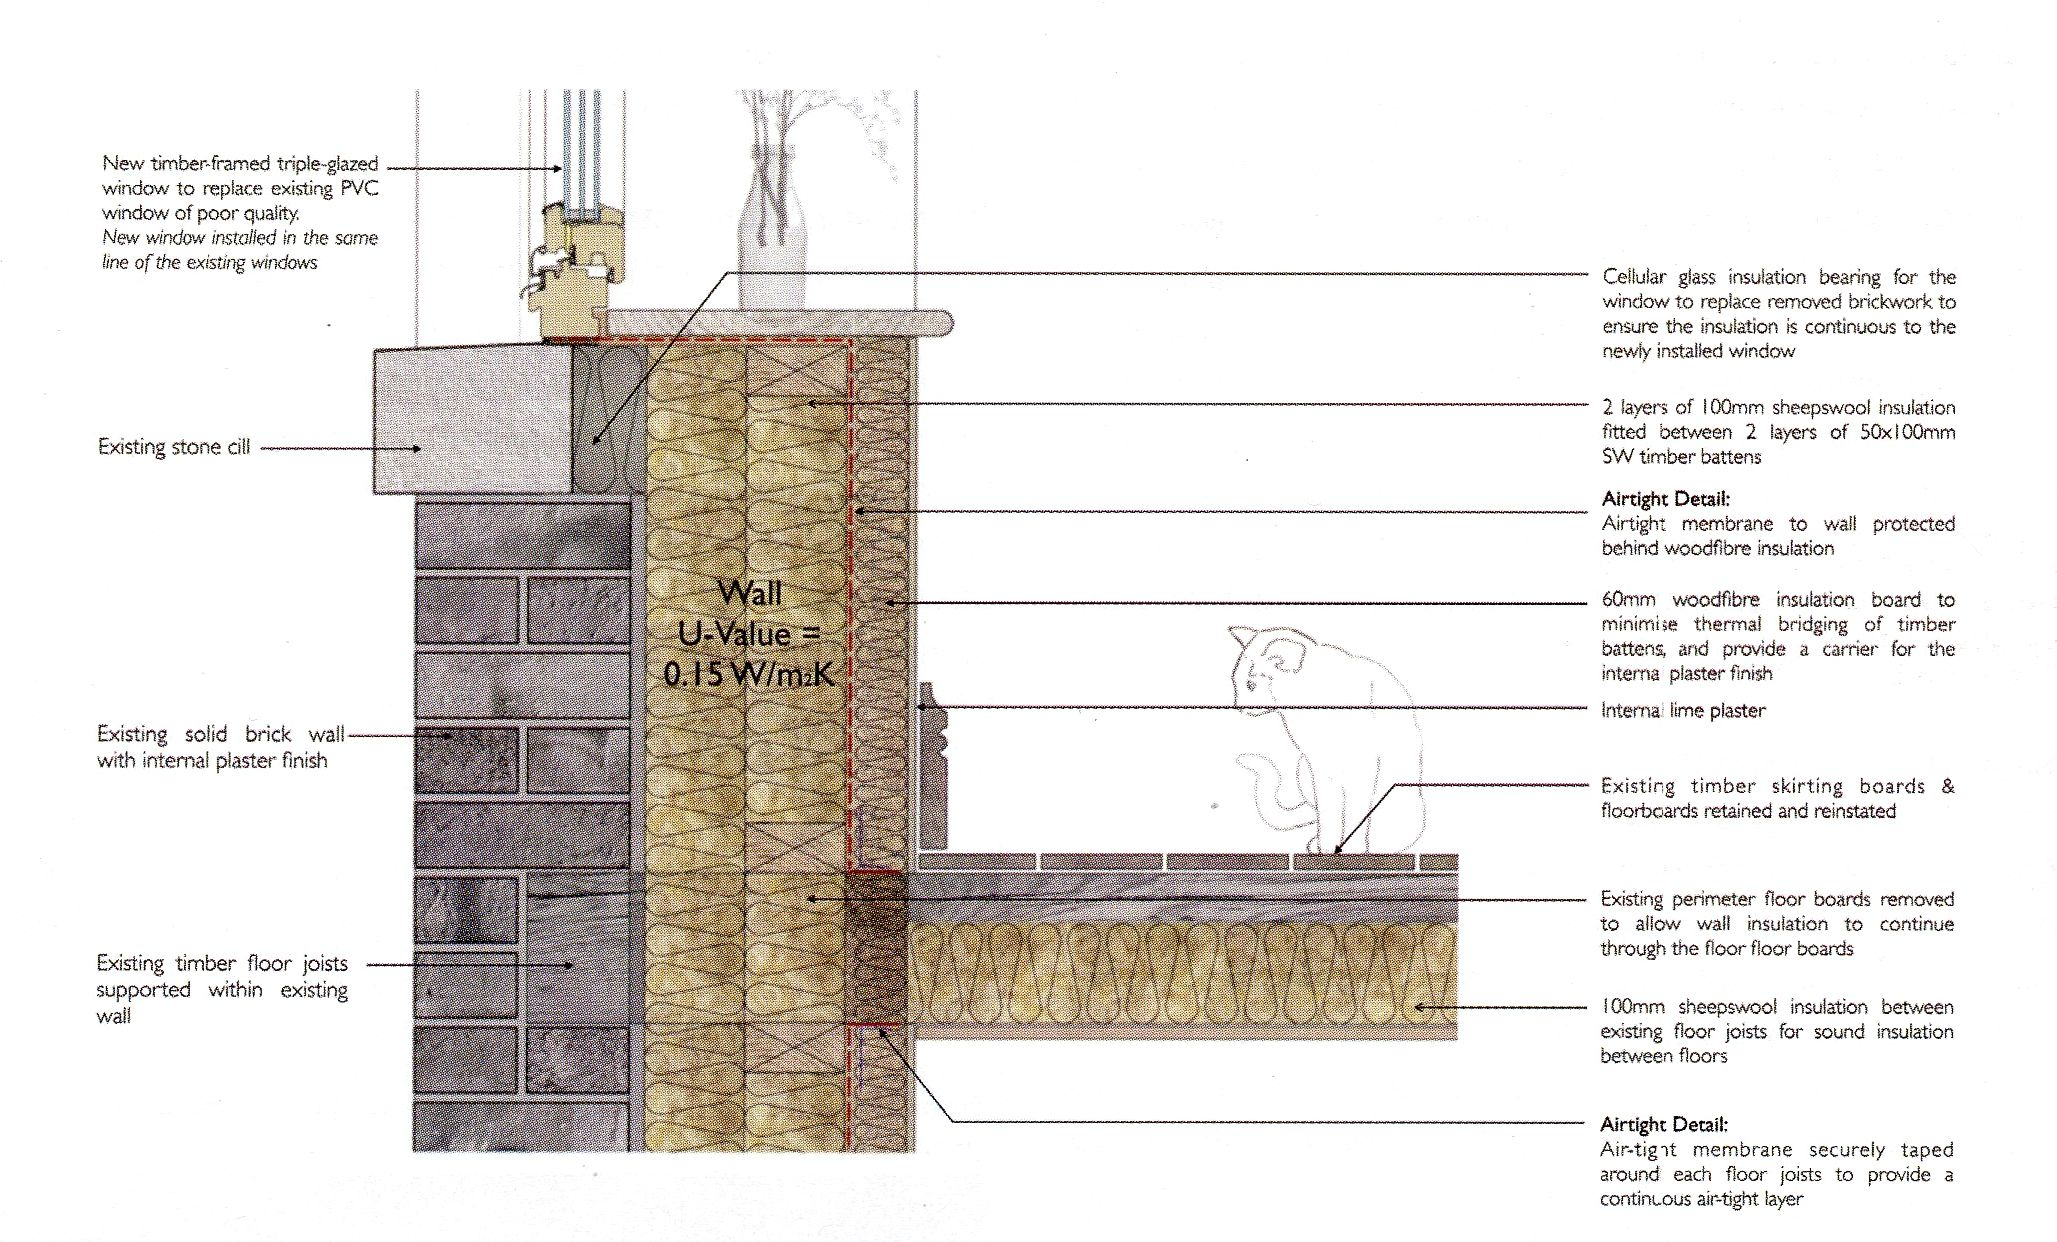 Passivhaus Construction Detail Wall Intermediate Floor W Window Opening Passive Design Passive House Brick And Stone